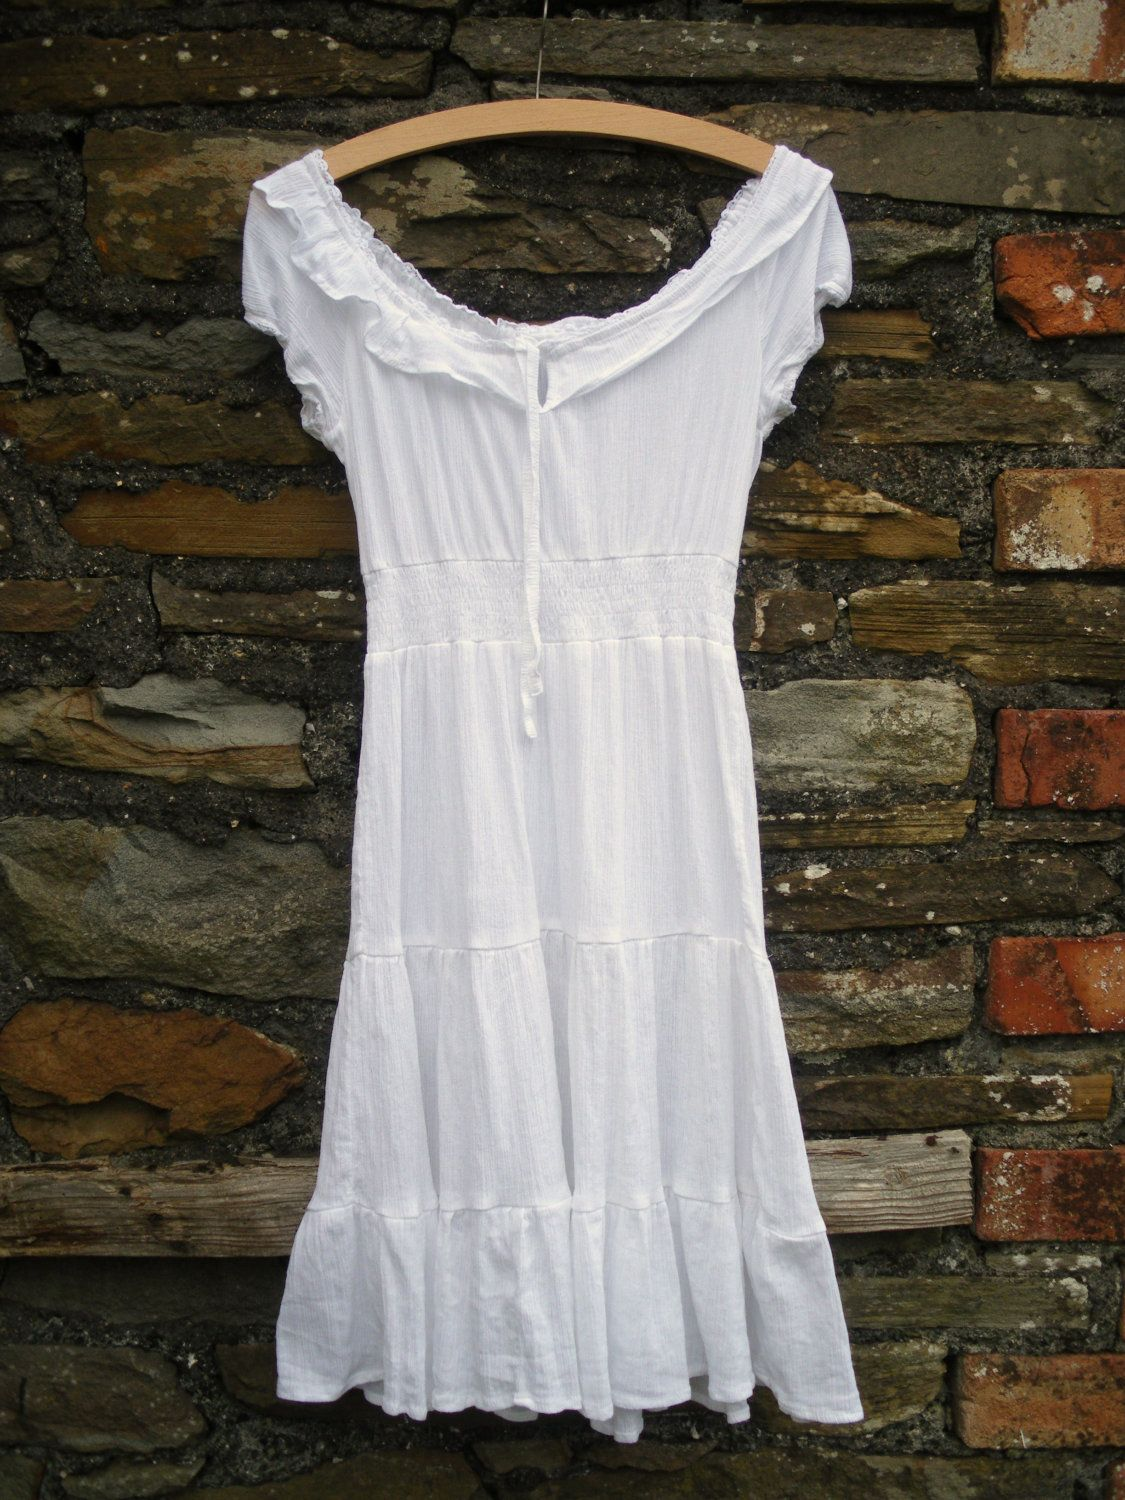 824ac25aba19 Vintage hippie smocked 70s lace cheesecloth gauze cotton crochet tier  Festival GYPSY Bohemian Peasant white Festival summer dress 8 10.  33.00